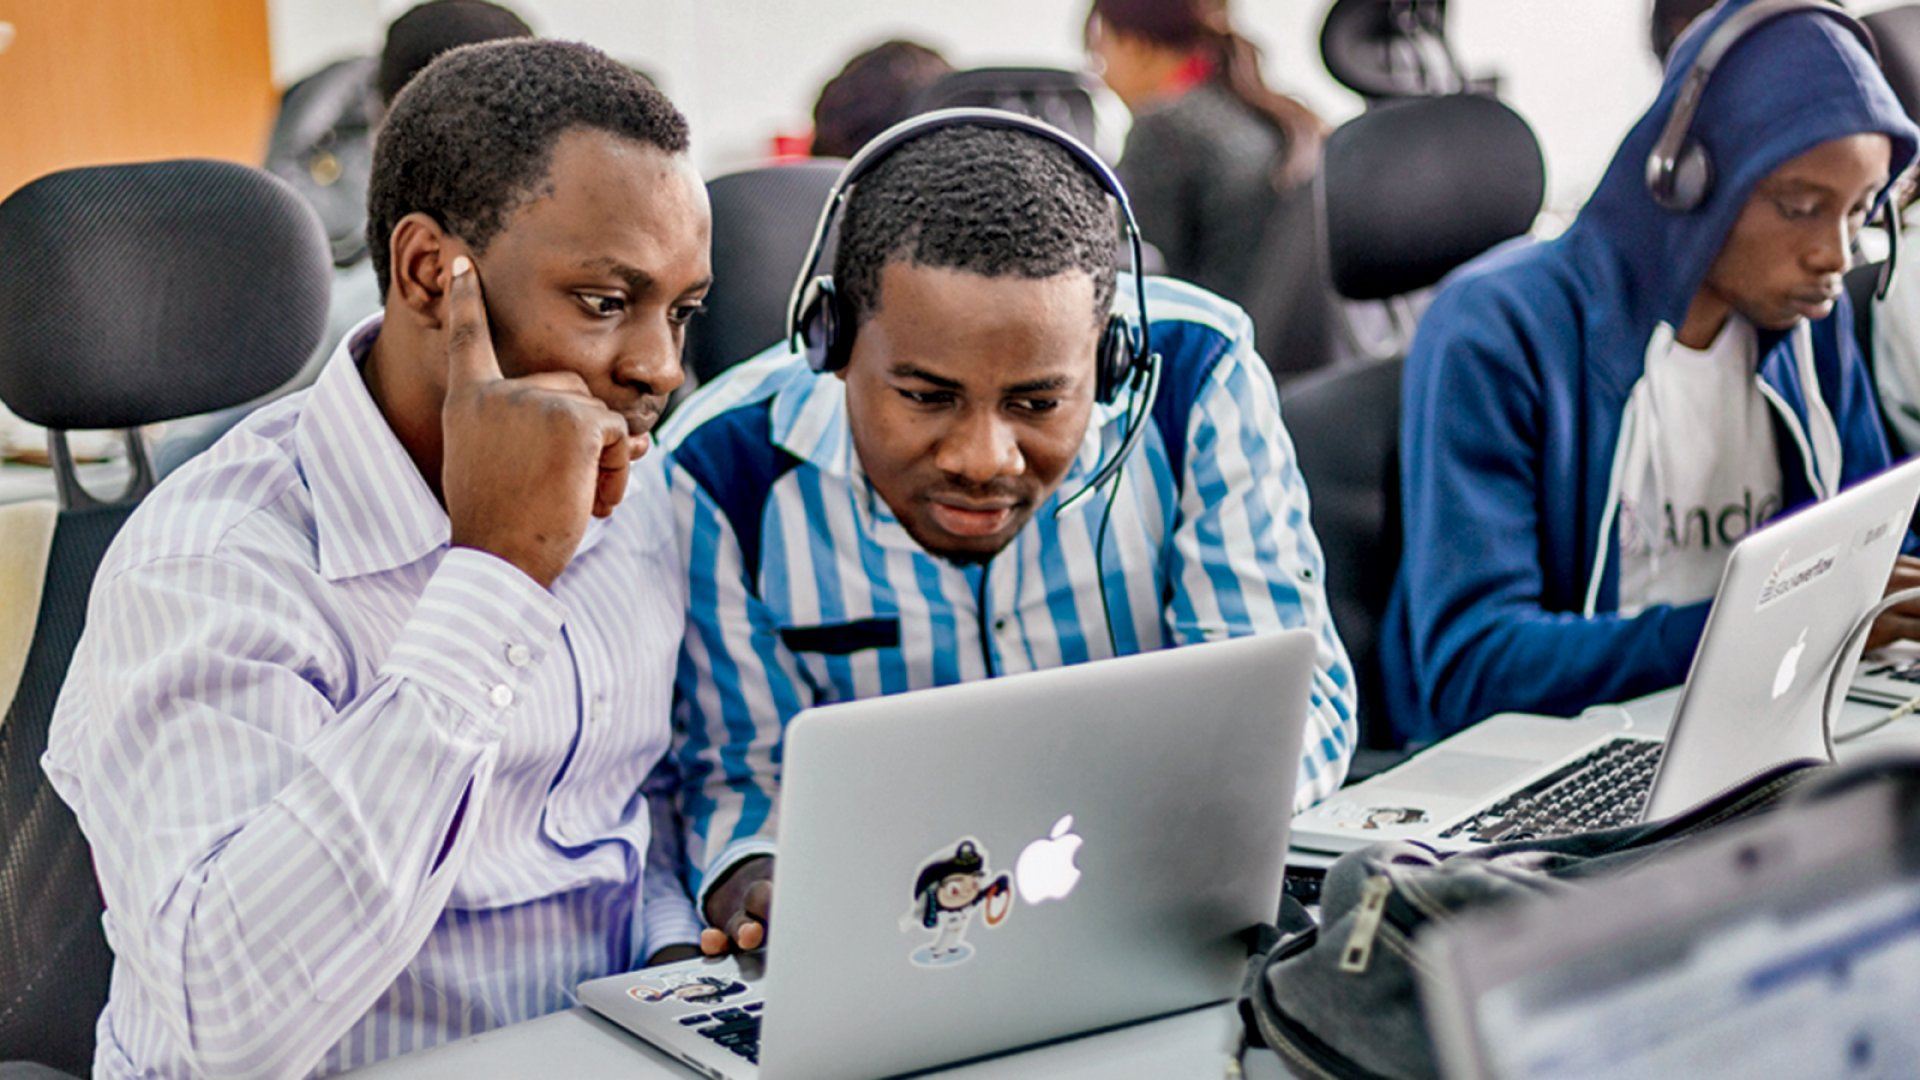 Kayode Adeniyi, Stephen Sunday, and Alex Onozor (blue sweatshirt), students from Nigeria, study at an Andela class.